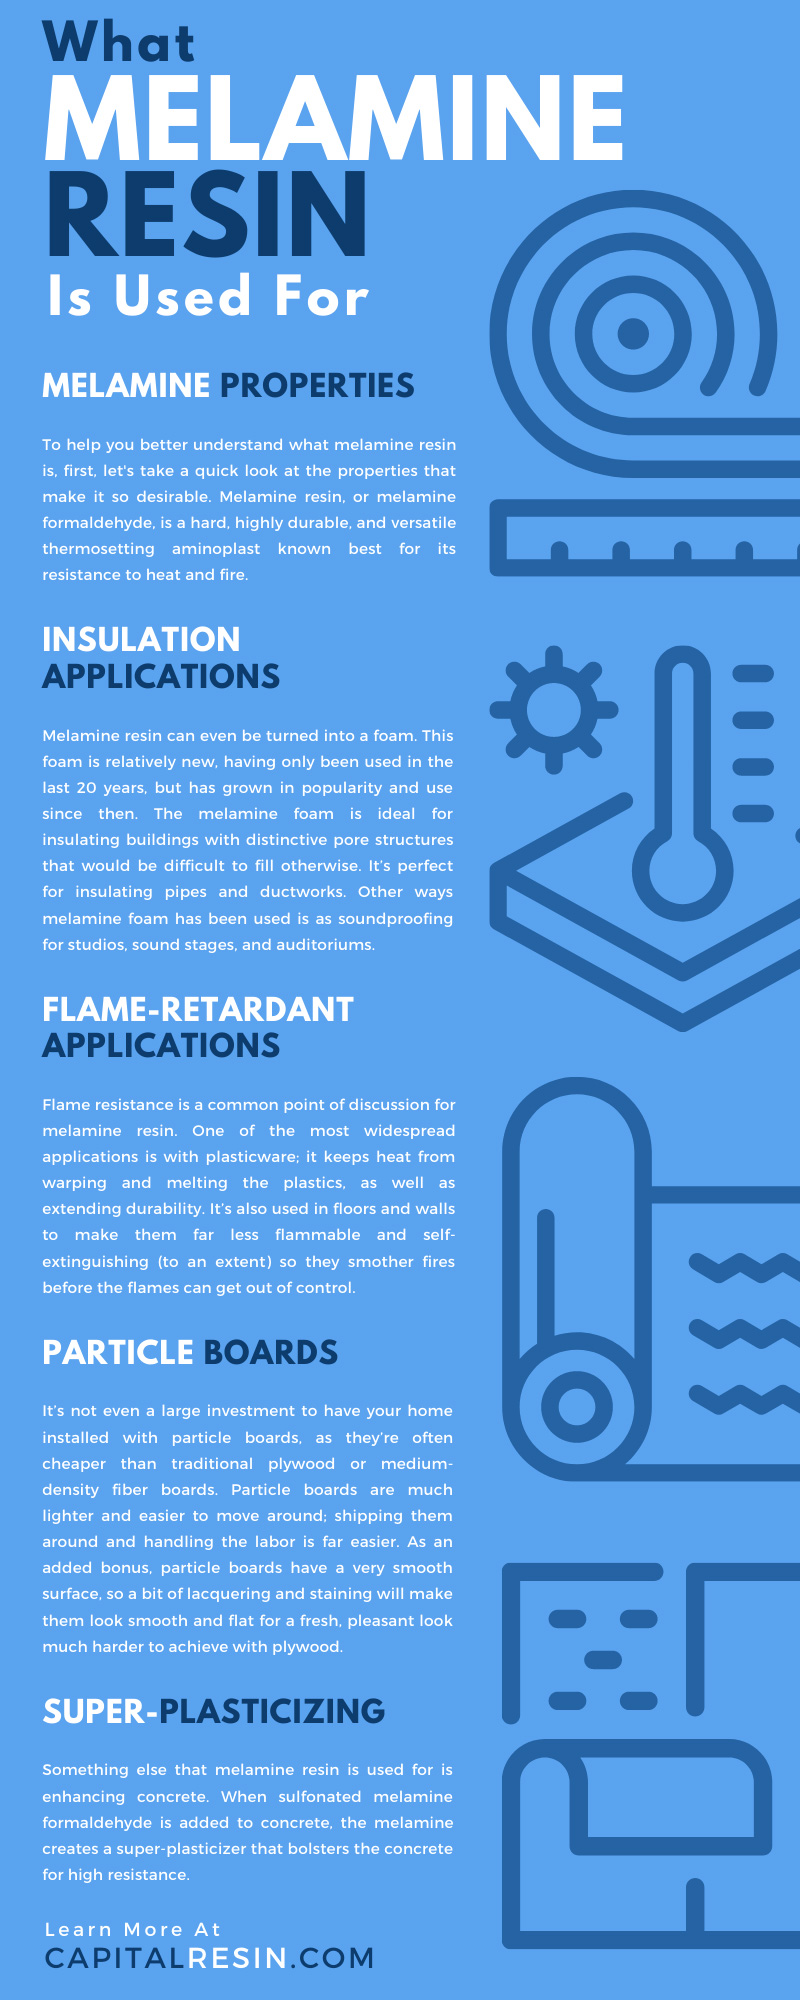 What Melamine Resin Is Used For